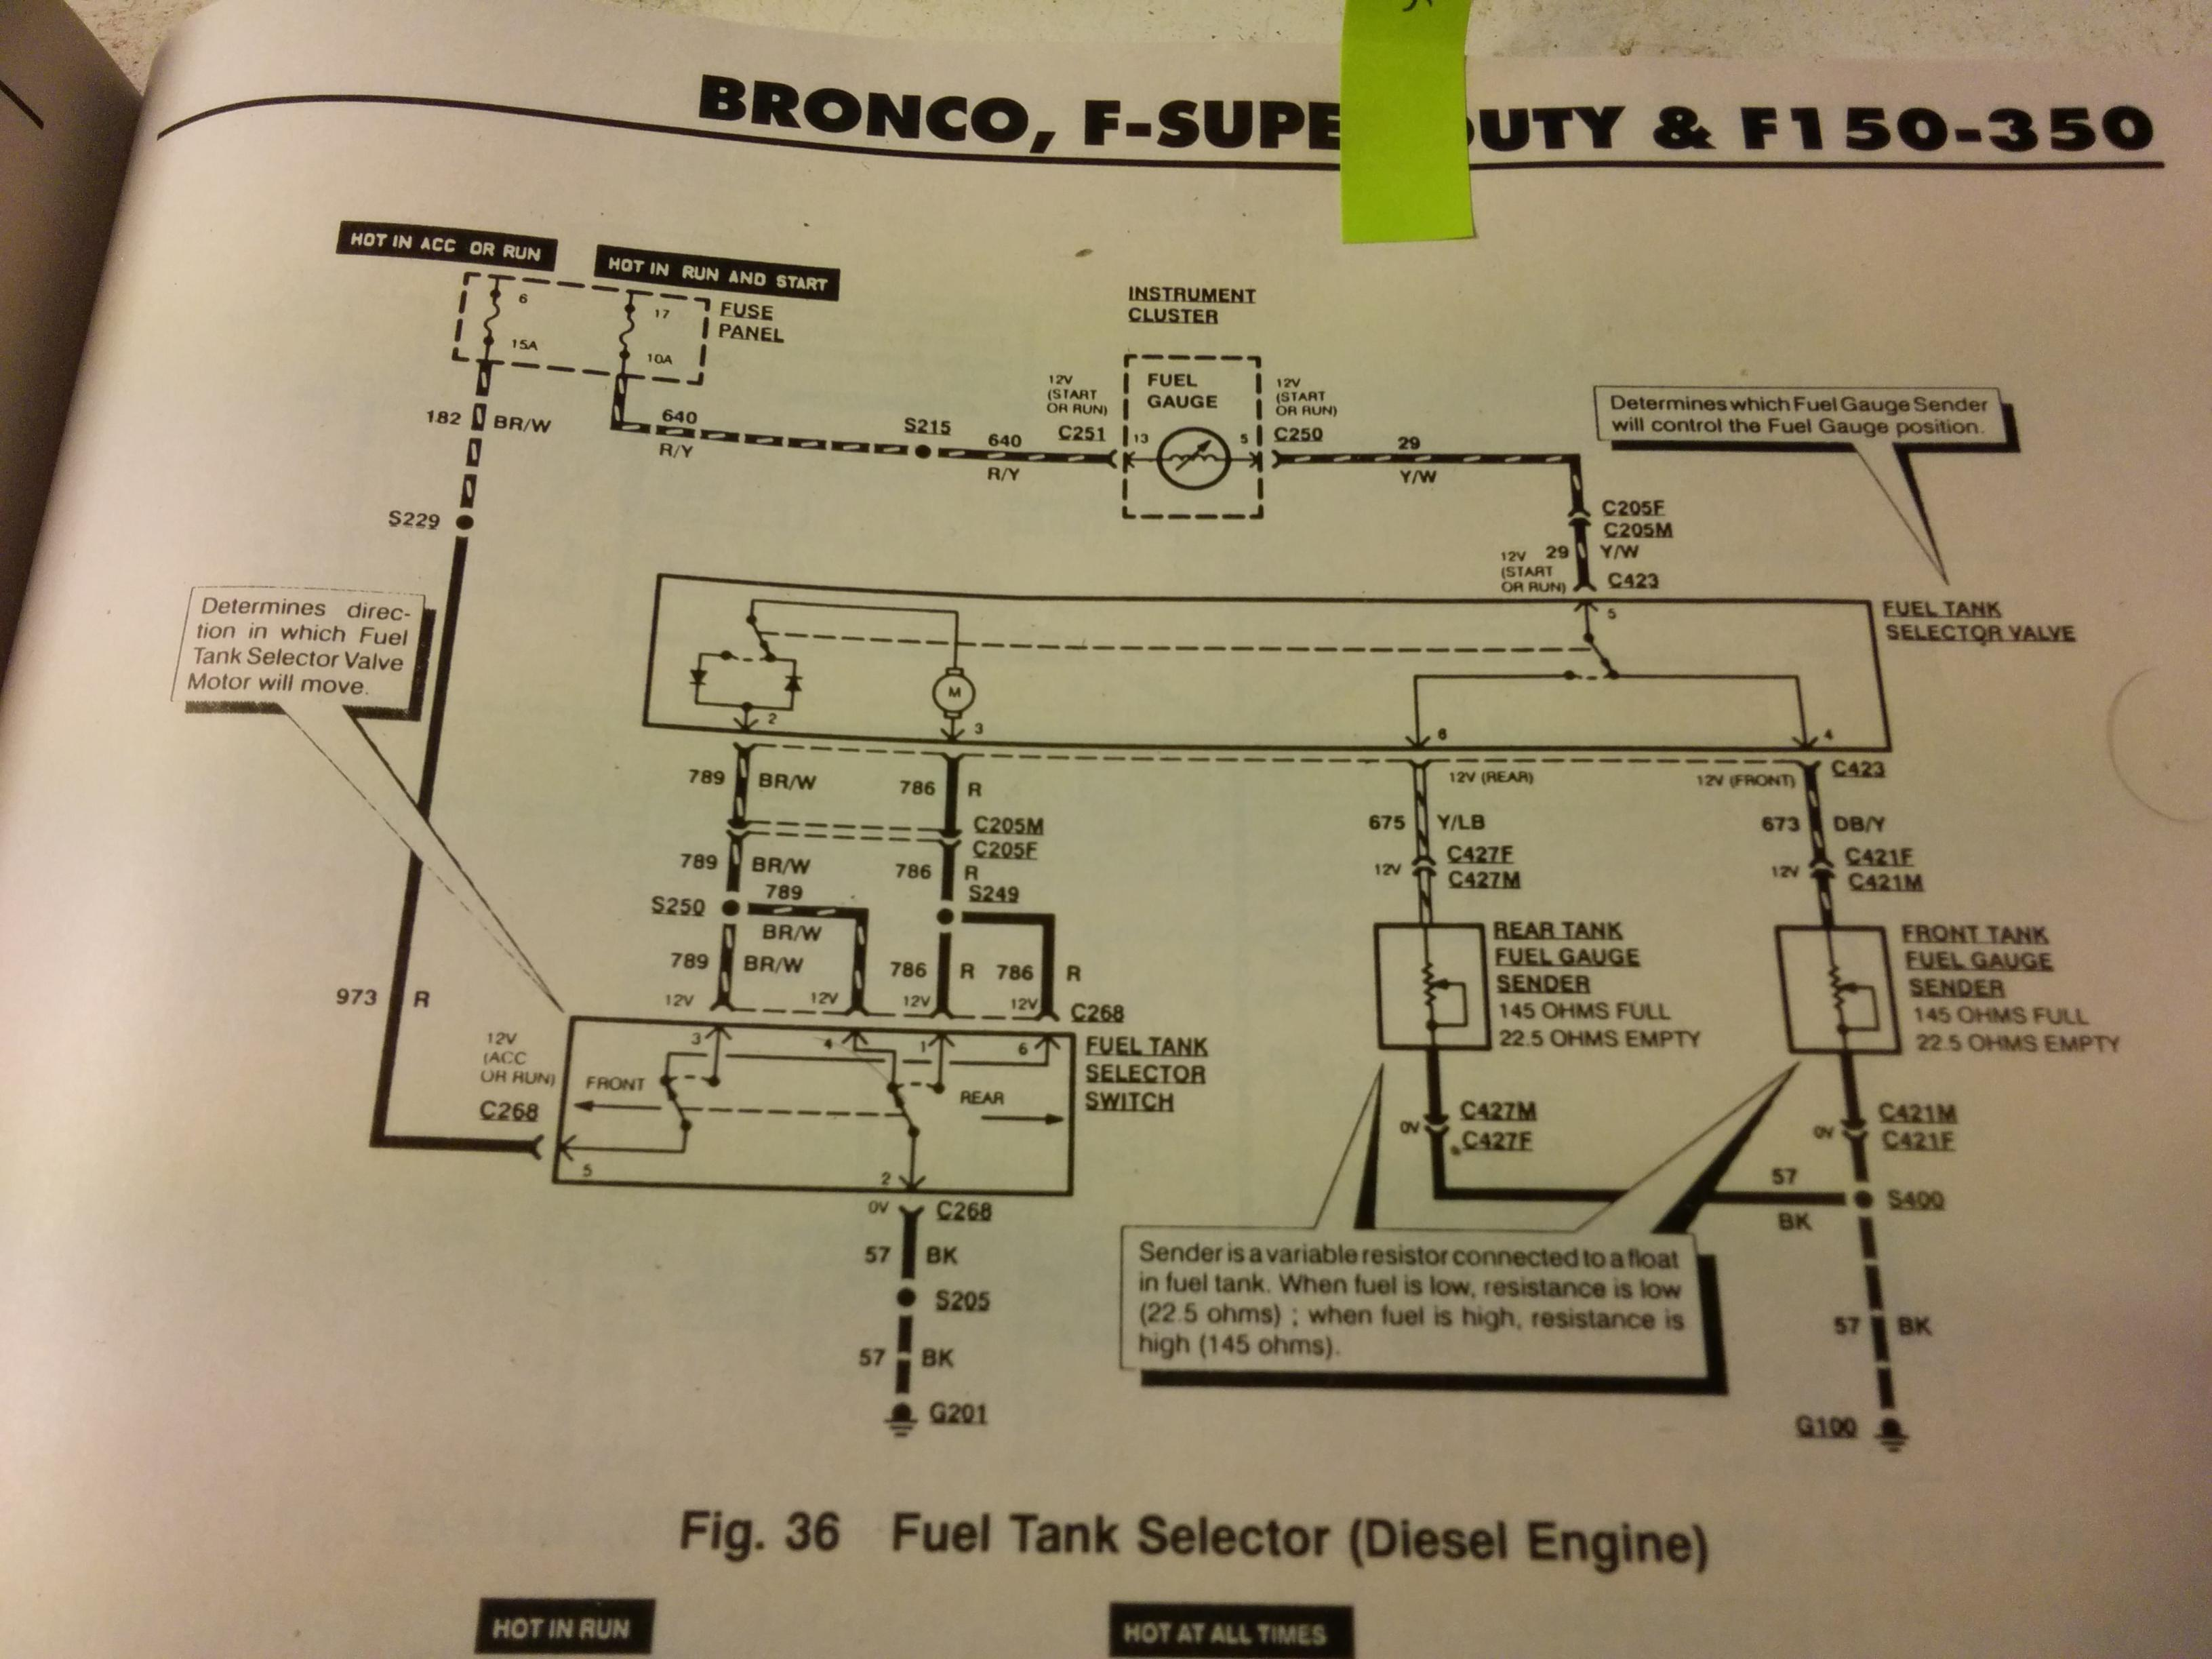 ford fuel tank selector switch wiring diagram - wiring diagram all  theory-arrange - theory-arrange.huevoprint.it  huevoprint